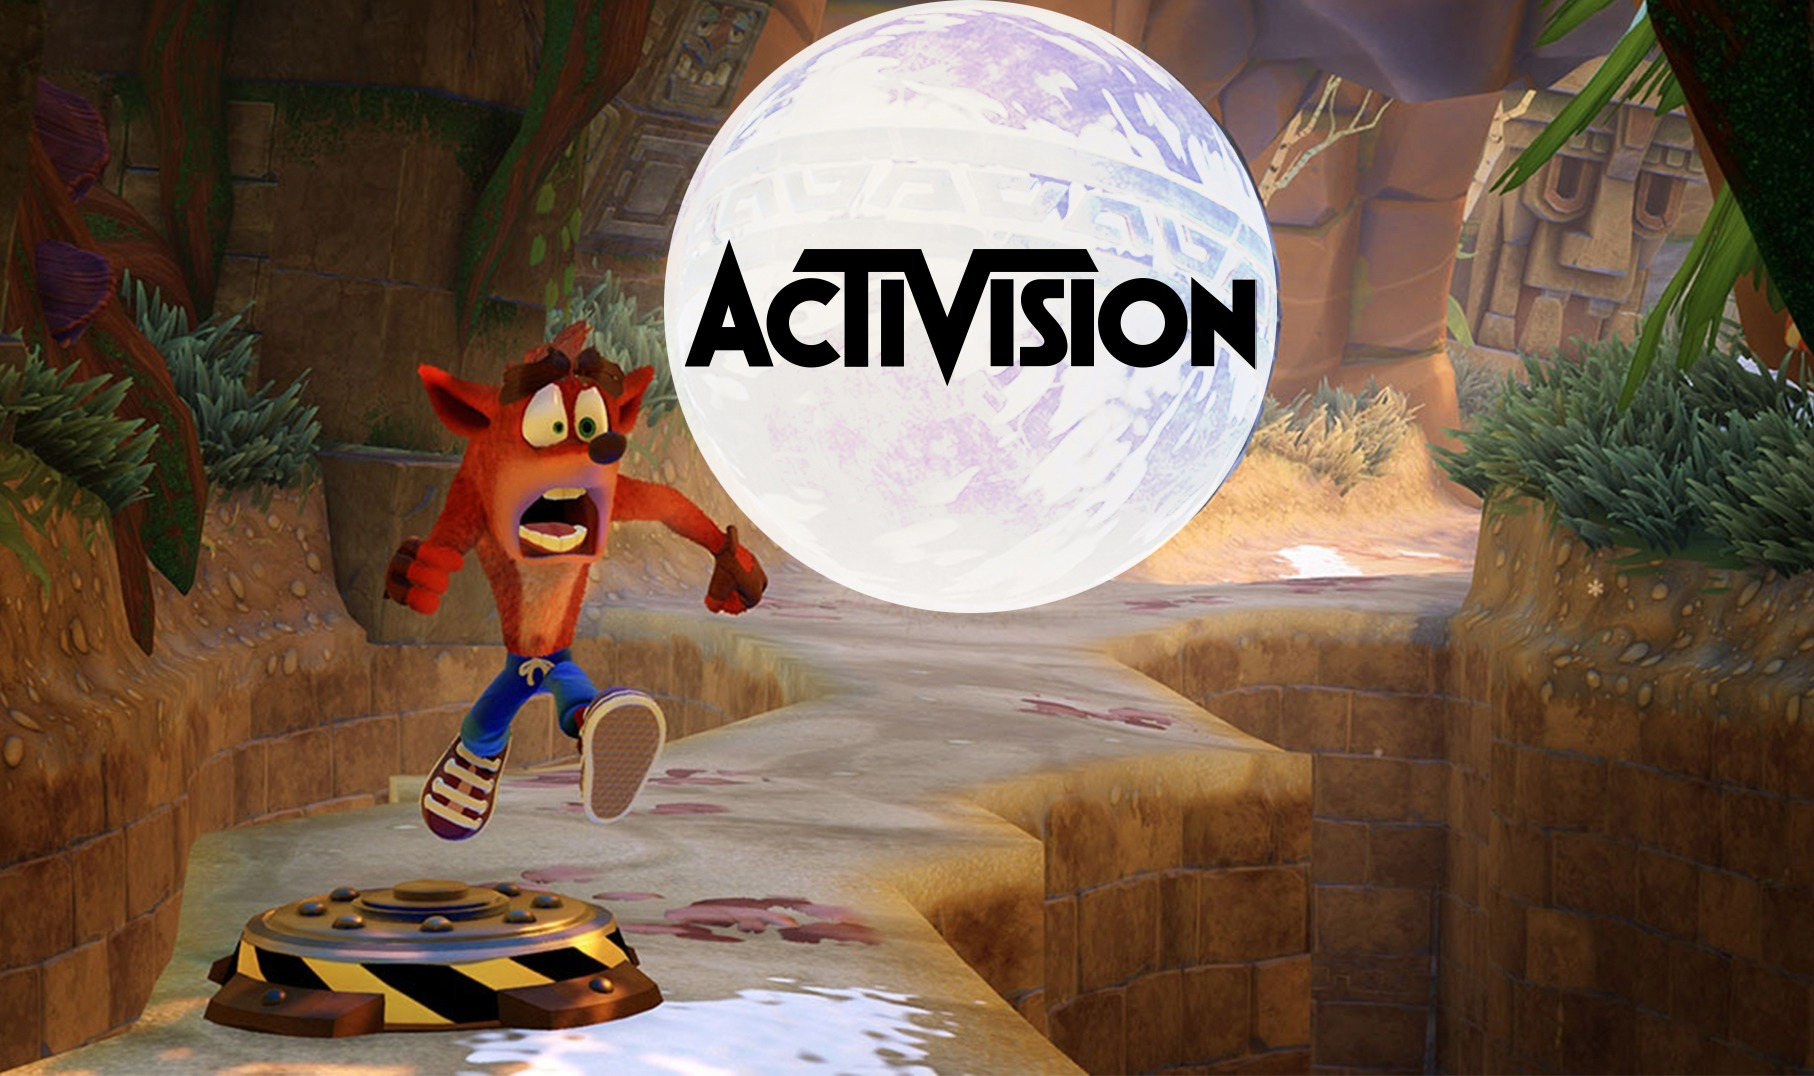 Amidst several layoff claims, Crash Bandicoot developer Toys for Bob confirms working on Call of Duty: Warzone